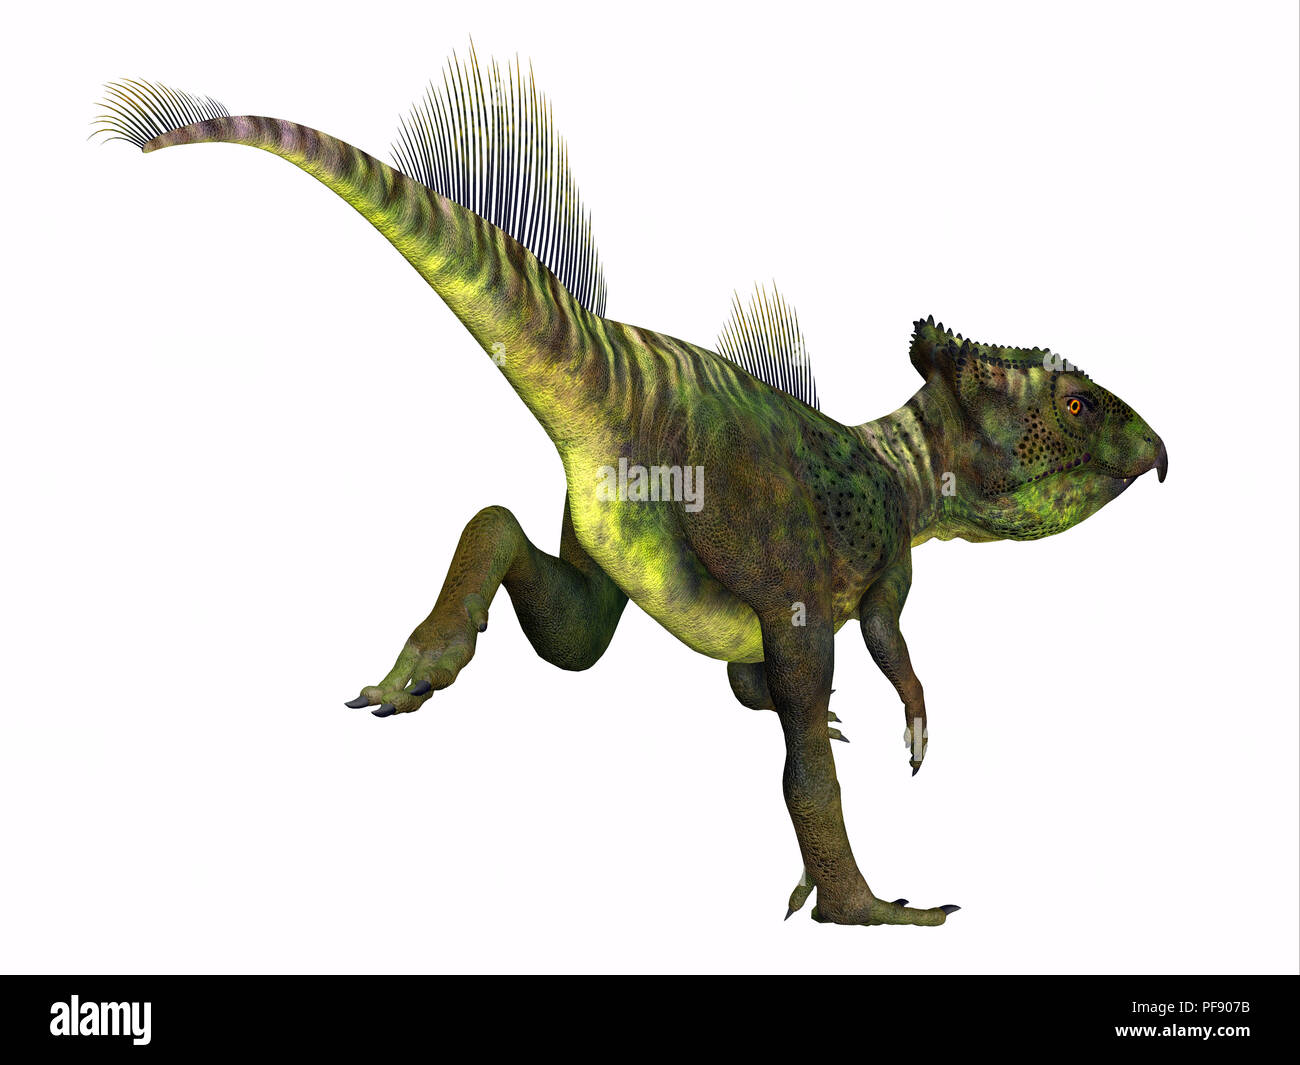 Archaeoceratops Dinosaur - Archaeoceratops was a Ceratopsian herbivorous dinosaur that lived in China in the Cretaceous Period. - Stock Image